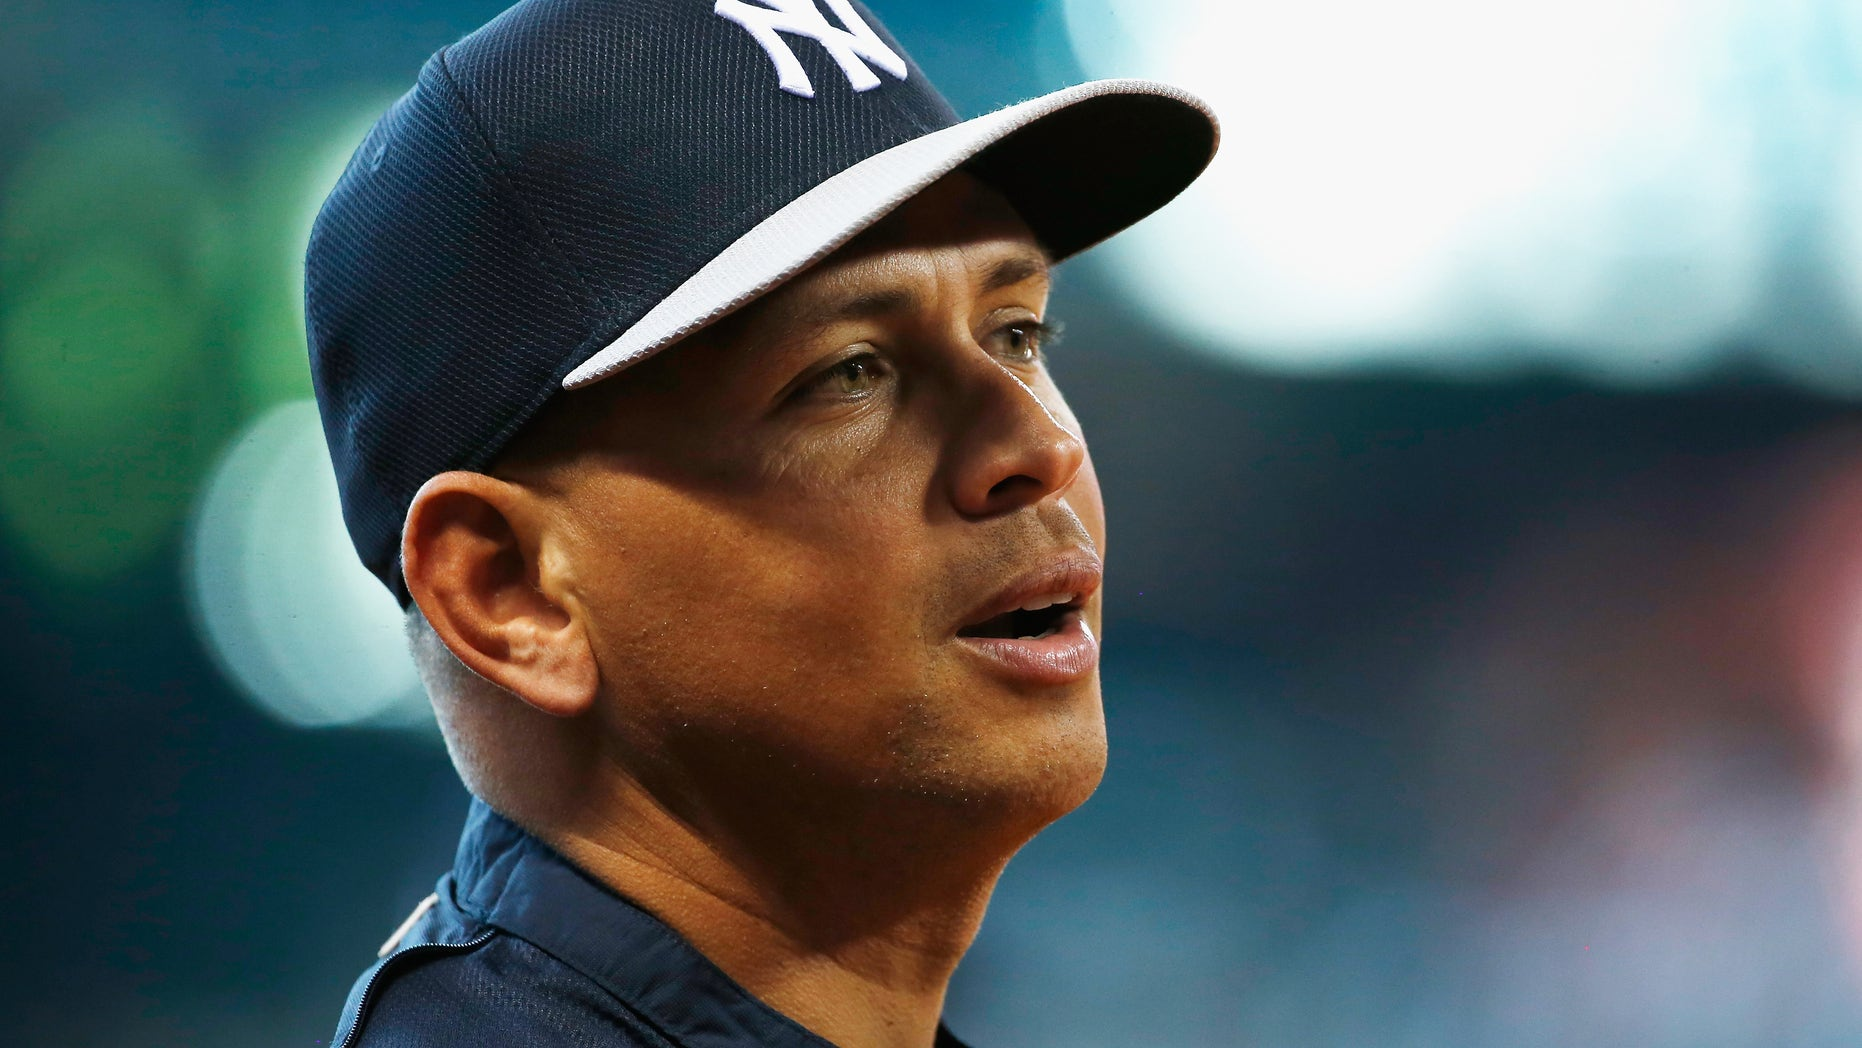 HOUSTON, TX - SEPTEMBER 27:  Alex Rodriguez #13 of the New York Yankees works out on the field before the game against the Houston Astros at Minute Maid Park on September 27, 2013 in Houston, Texas.  (Photo by Scott Halleran/Getty Images)